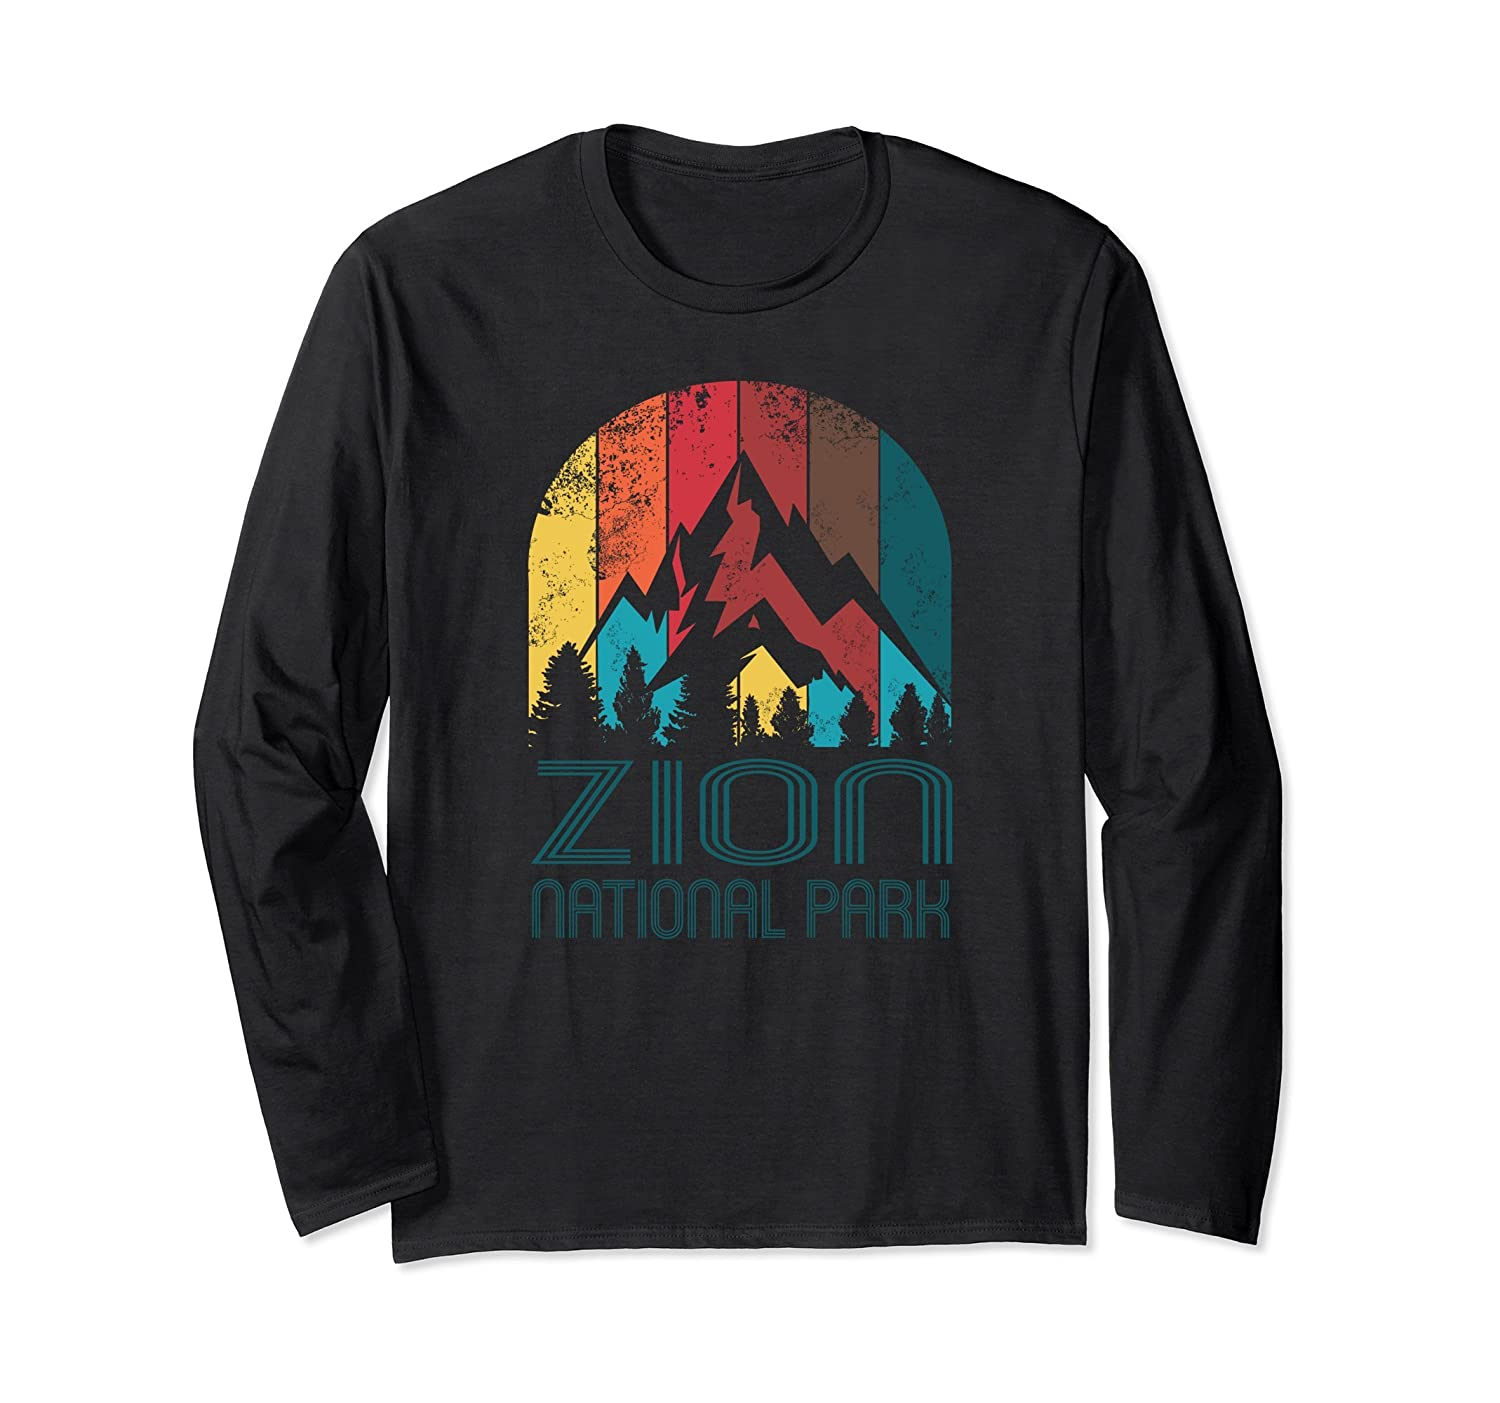 Zion National Park Gift or Souvenir Long Sleeve T Shirt-Awarplus